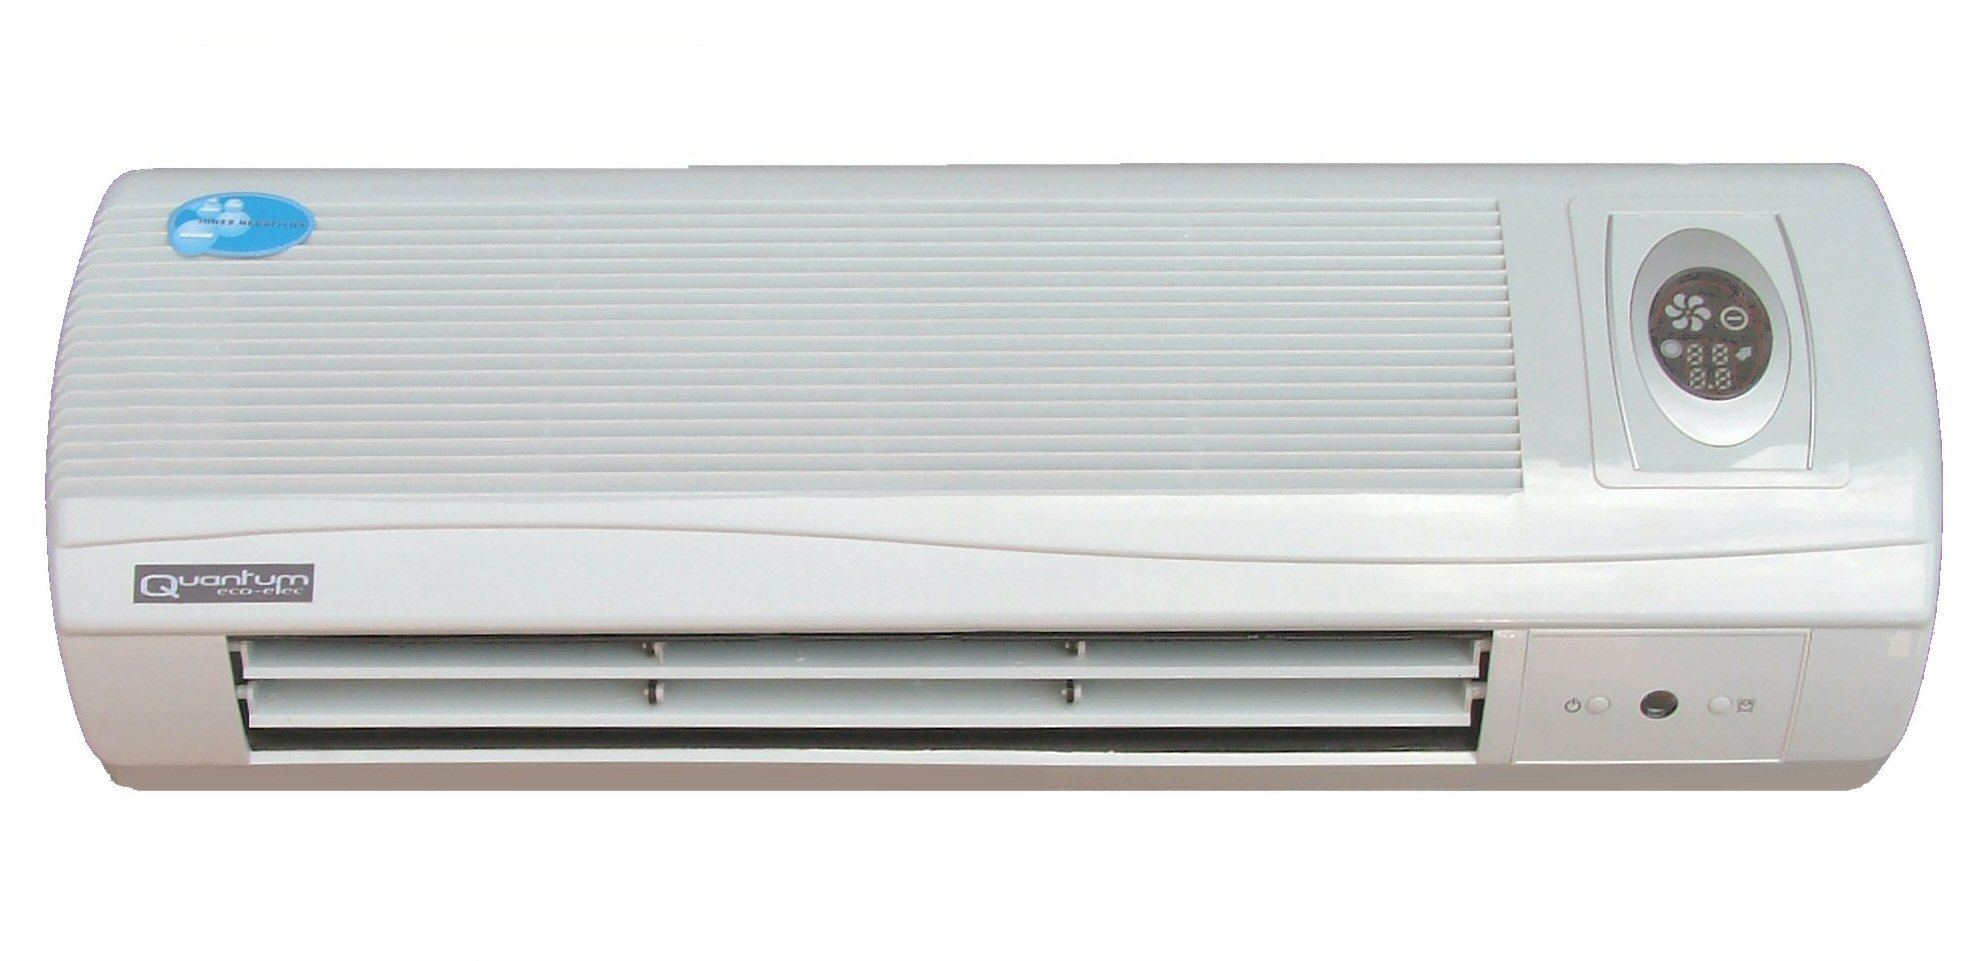 Slimline electric heaters wall mounted - Heater Qe7050